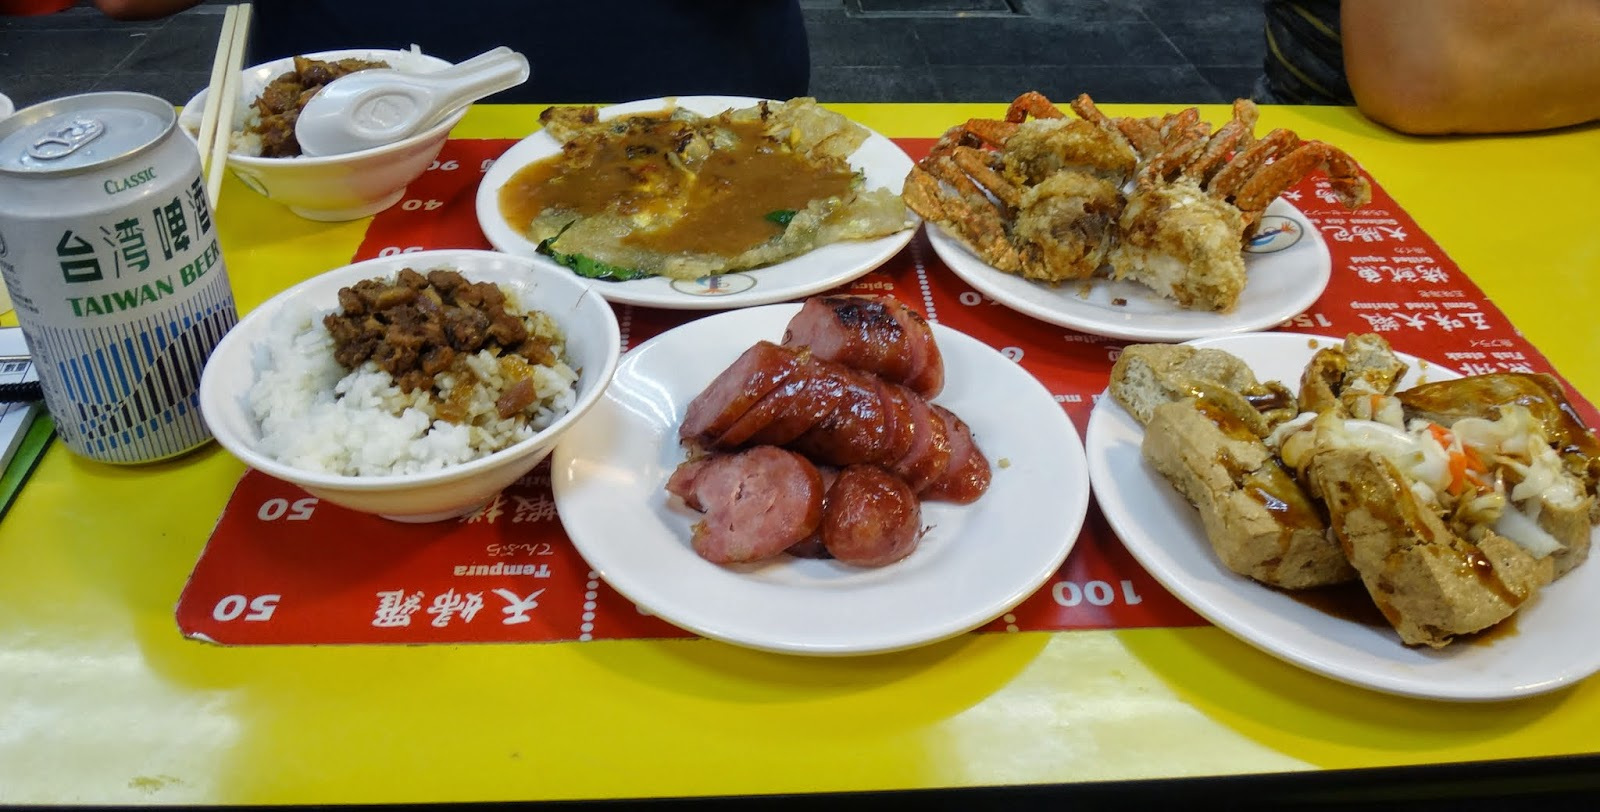 Our dinner costs TWD450 for fried crab, sausage, braised pork rice, fried oyster, stinky tofu and beer at Shilin Night Market in Taipei, Taiwan